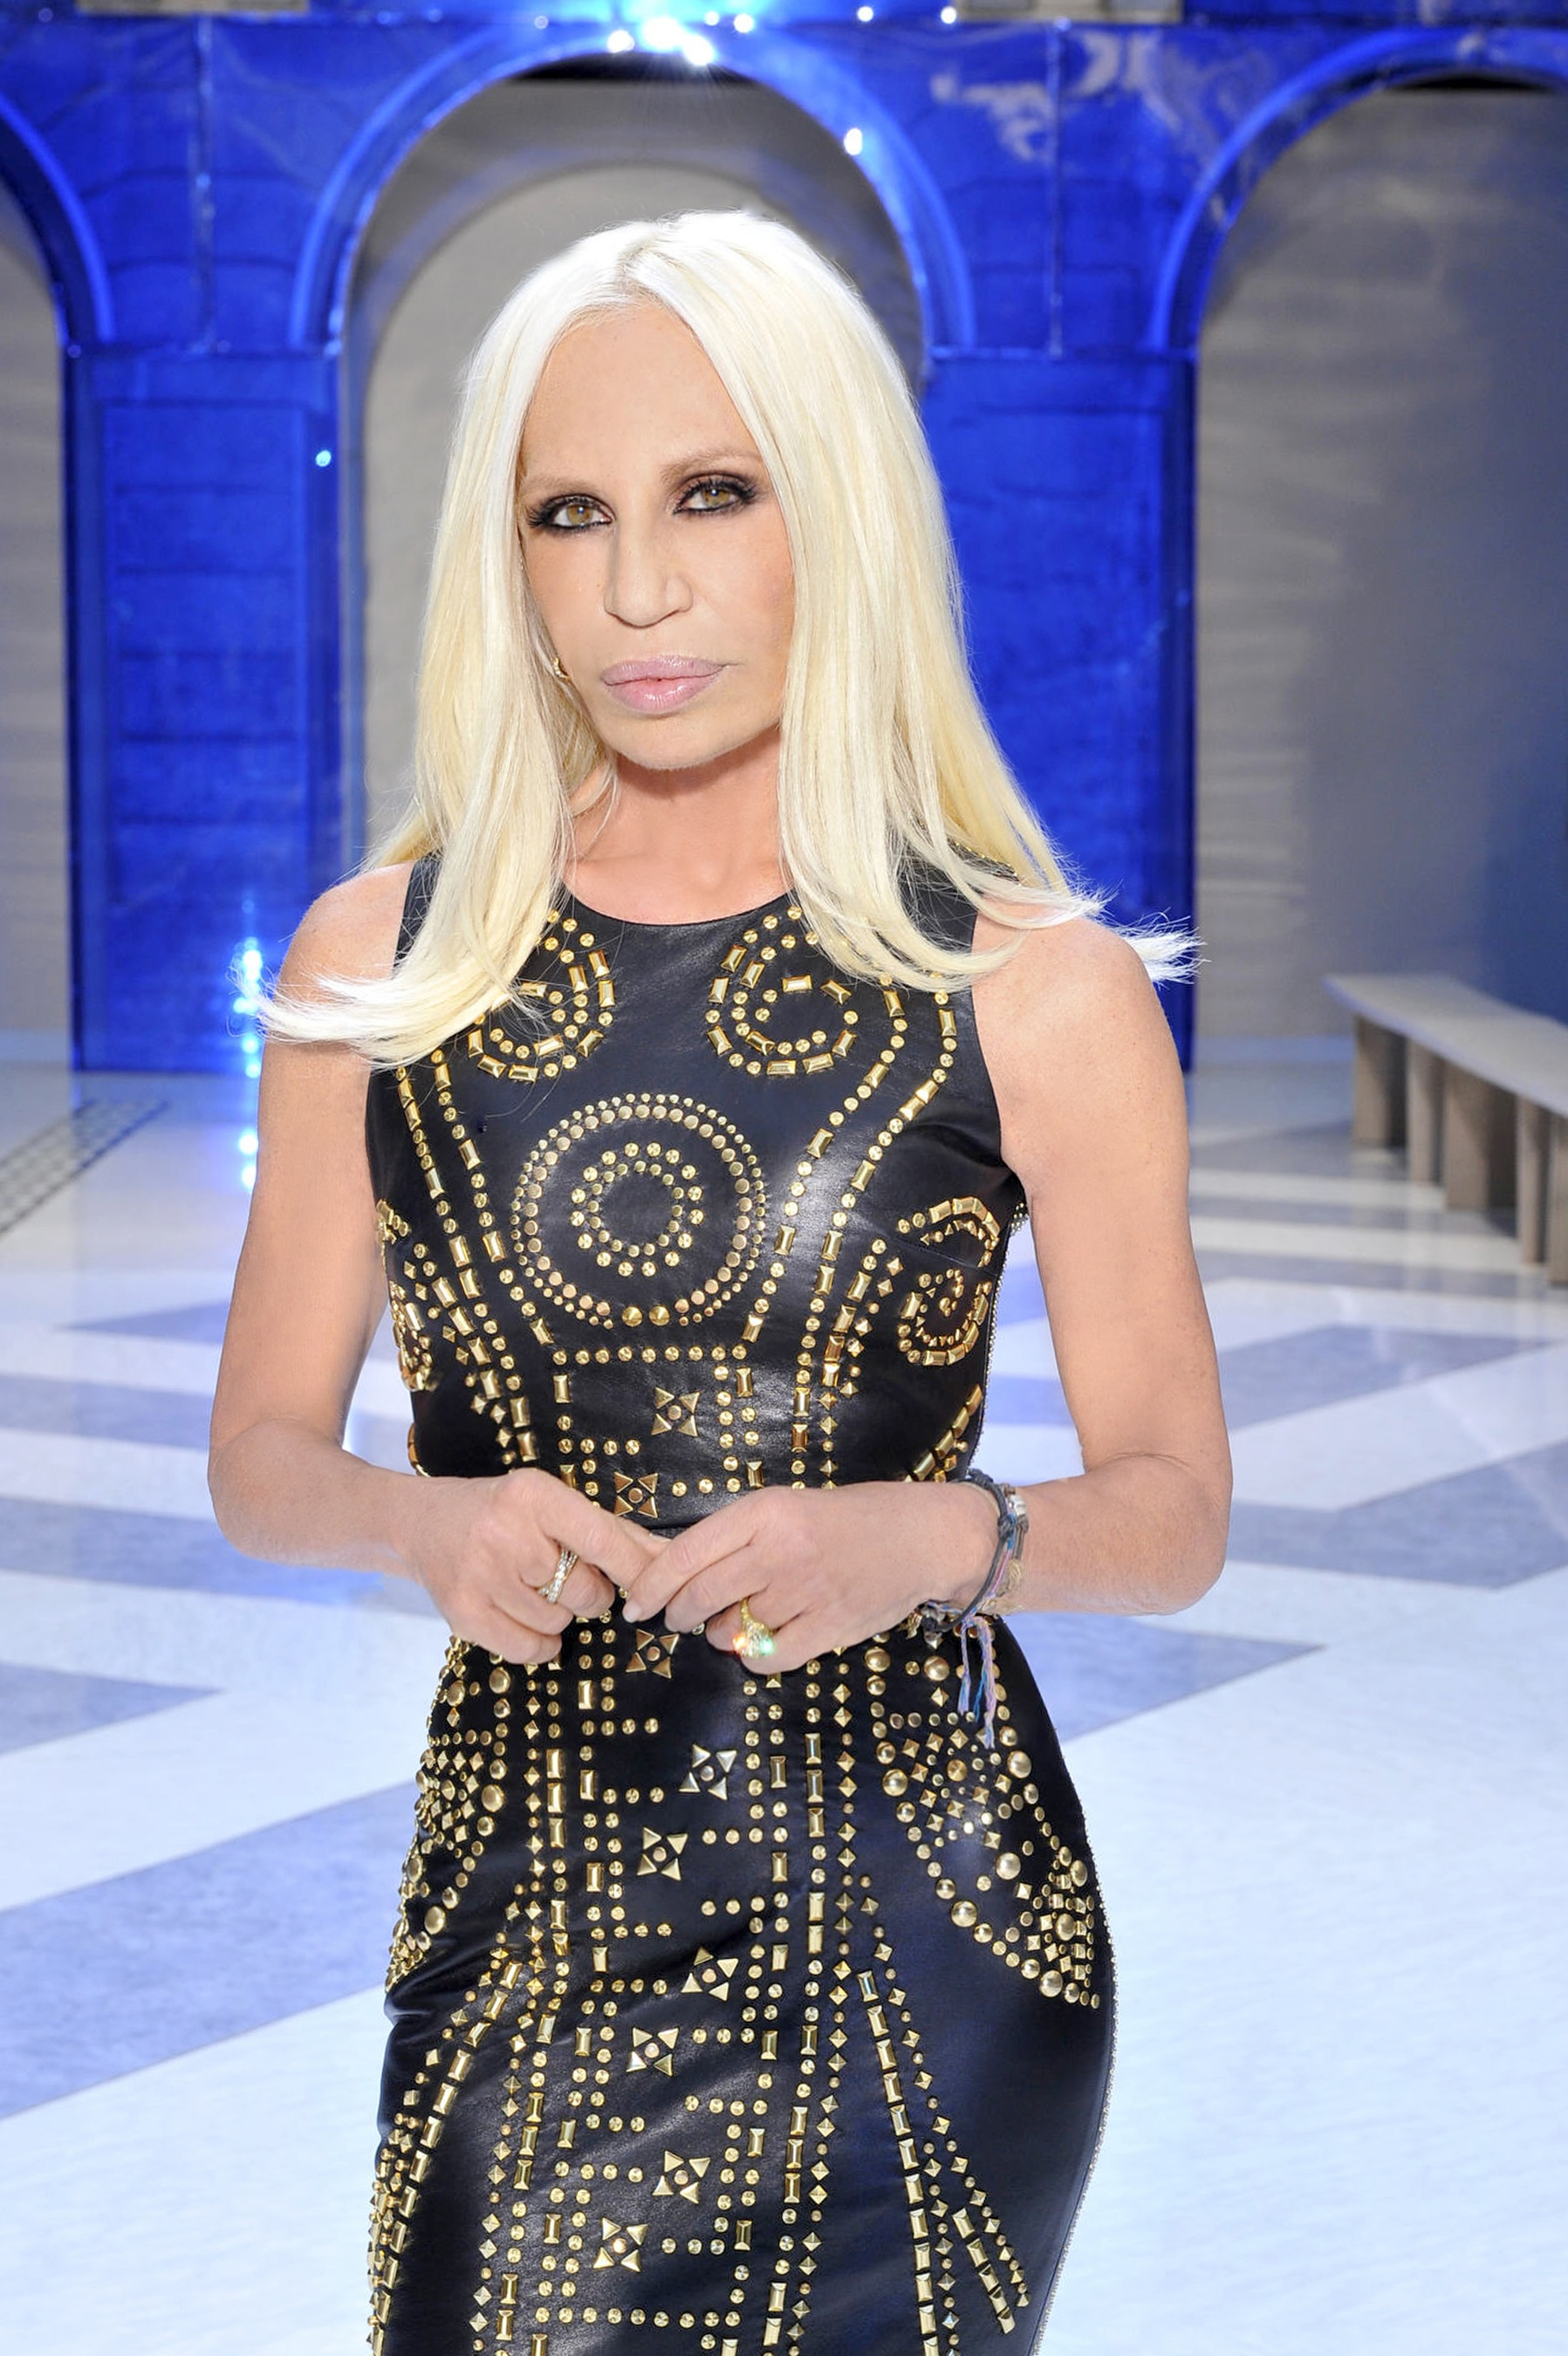 donatella-versace-for-hm.jpg